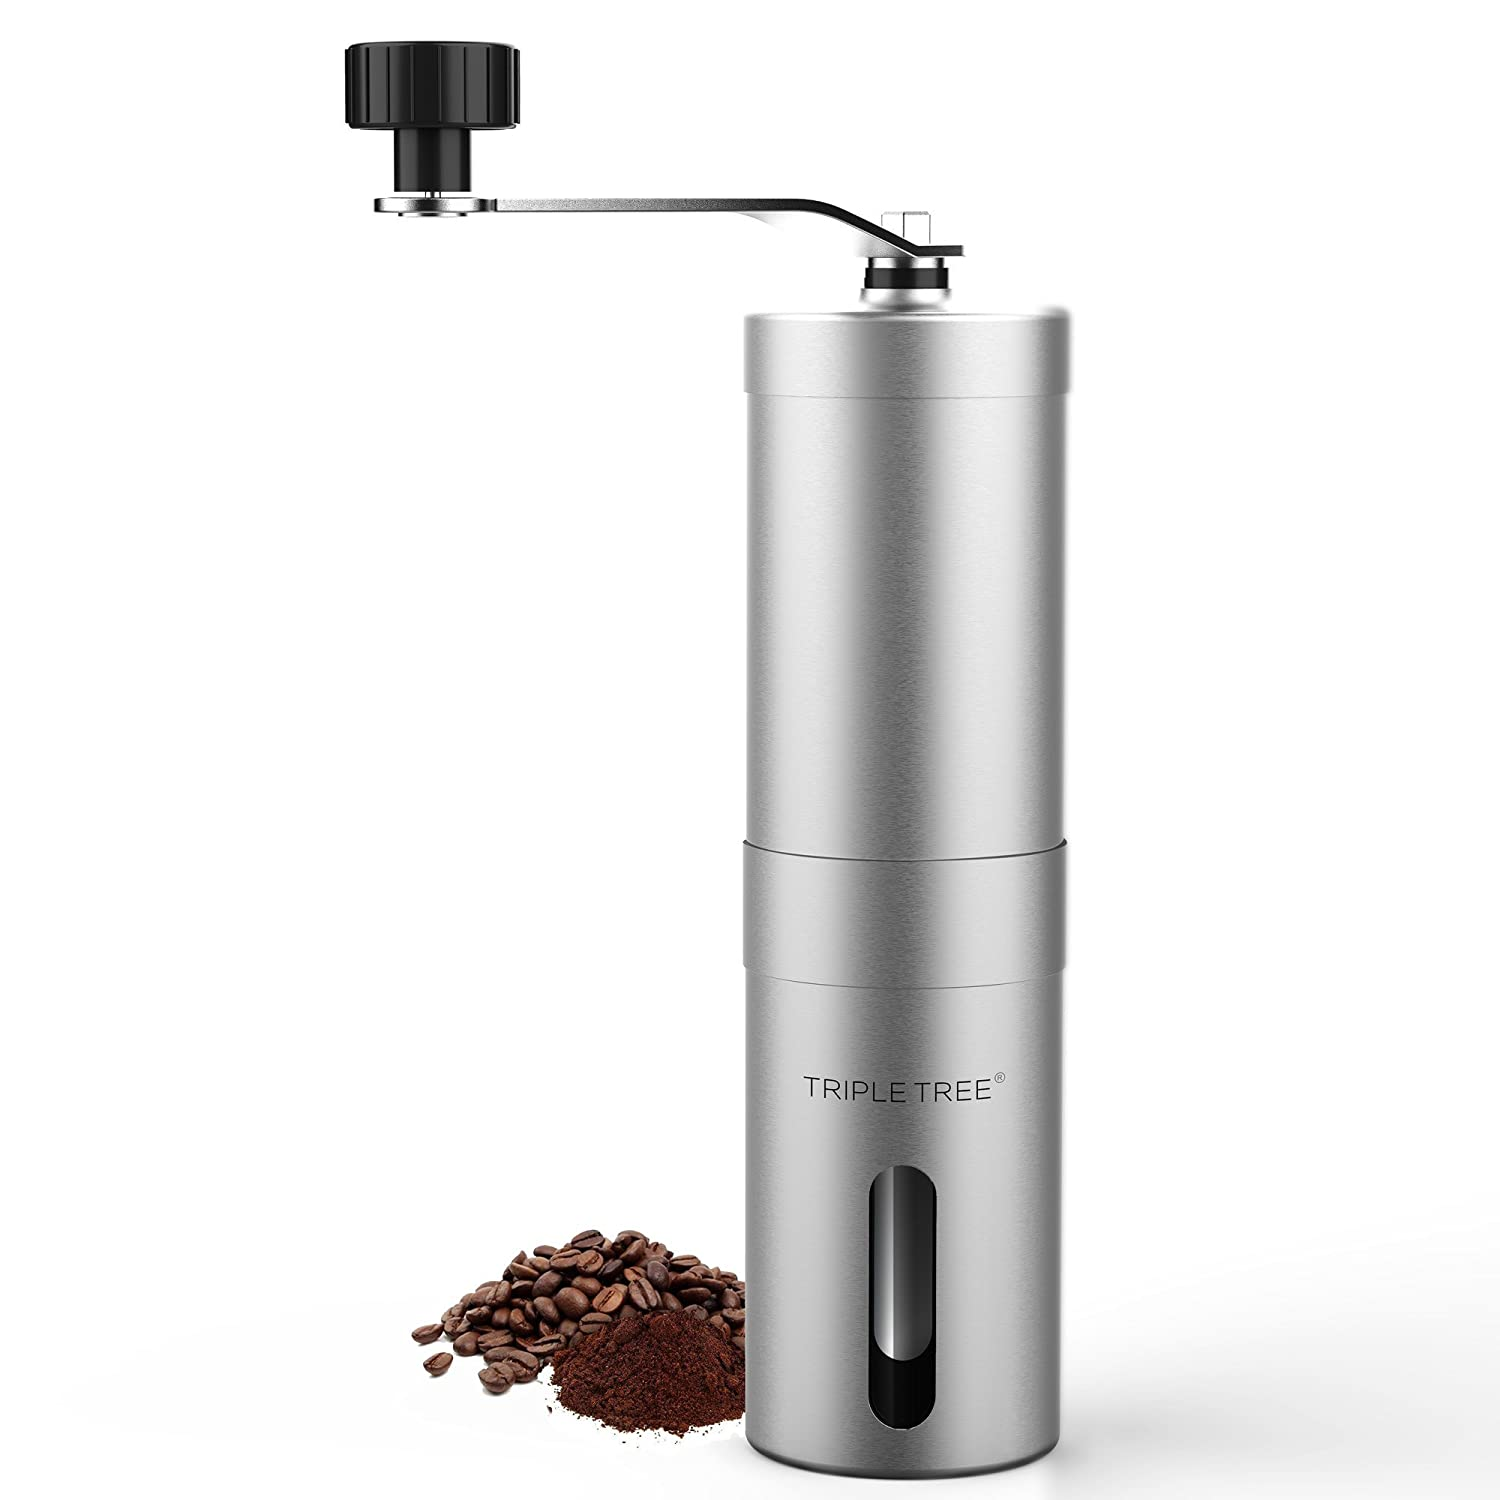 Portable Manual Coffee Grinder, Hand Coffee Bean Mill With Ceramic Burr, Stainless Shell, Removable handle, 0.4 Cup Container TRIPLE TREE